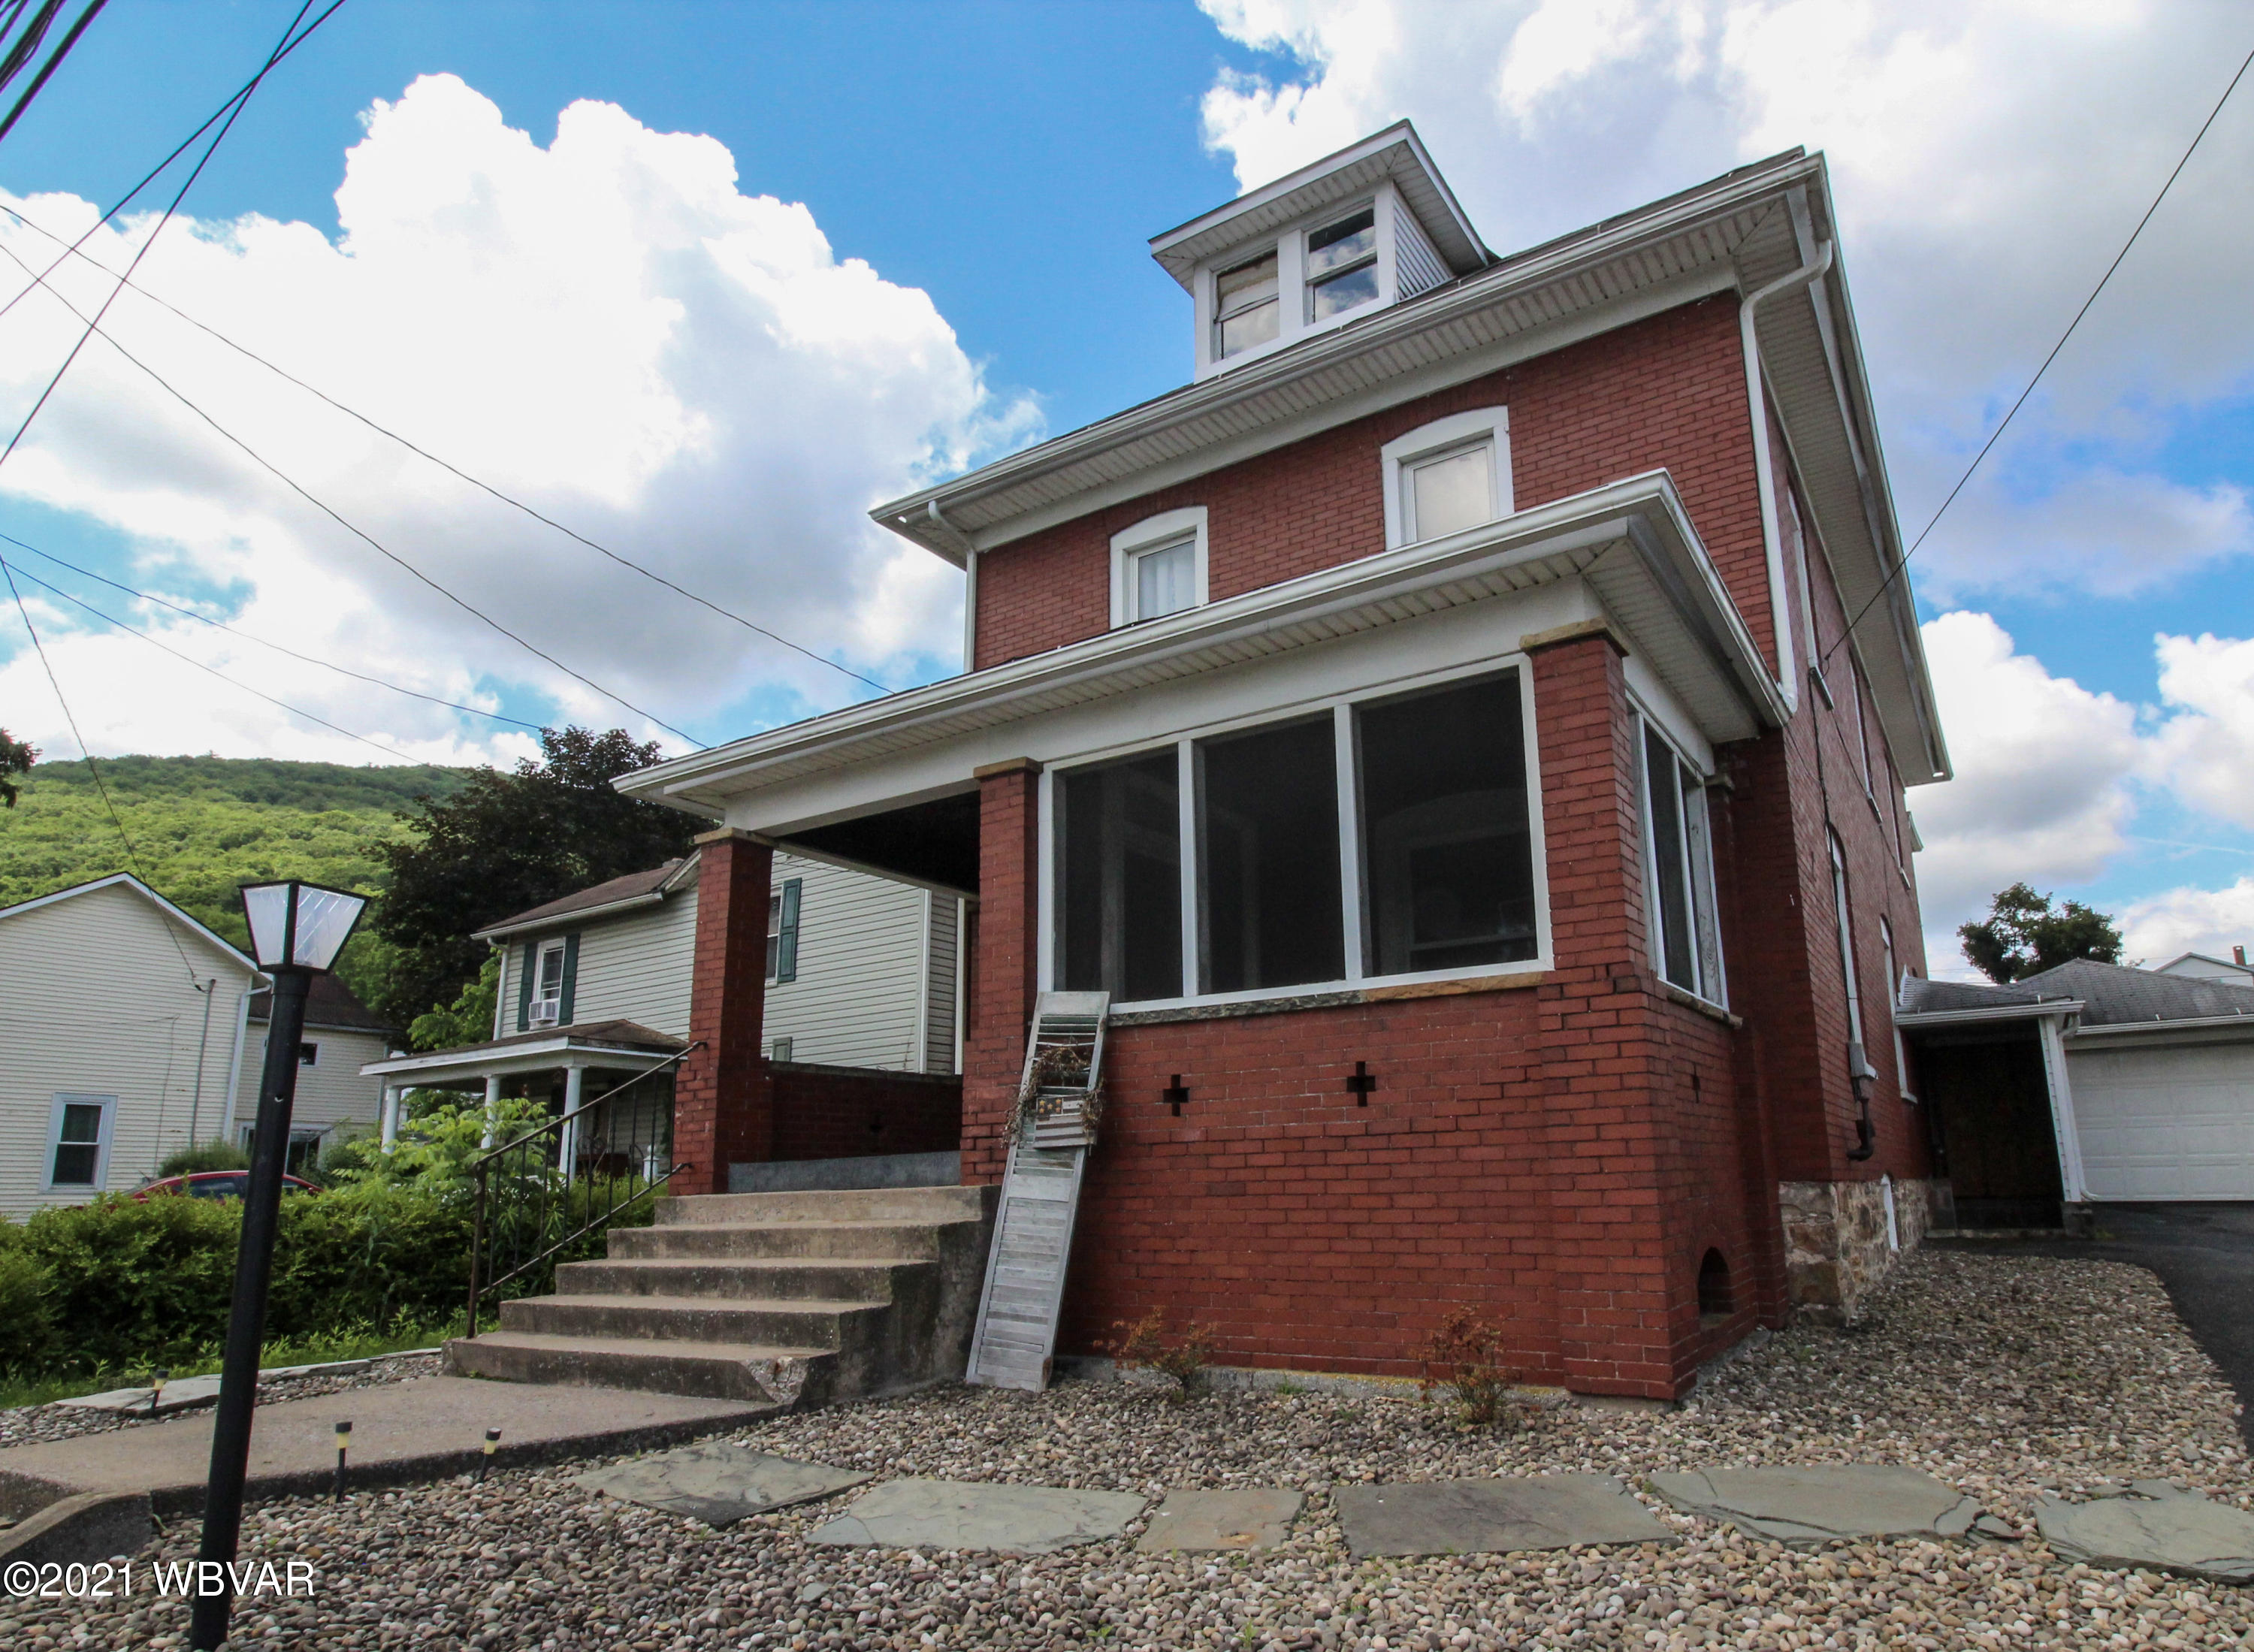 223 WATER STREET, Mill Hall, PA 17751, 4 Bedrooms Bedrooms, ,1 BathroomBathrooms,Residential,For sale,WATER,WB-92744